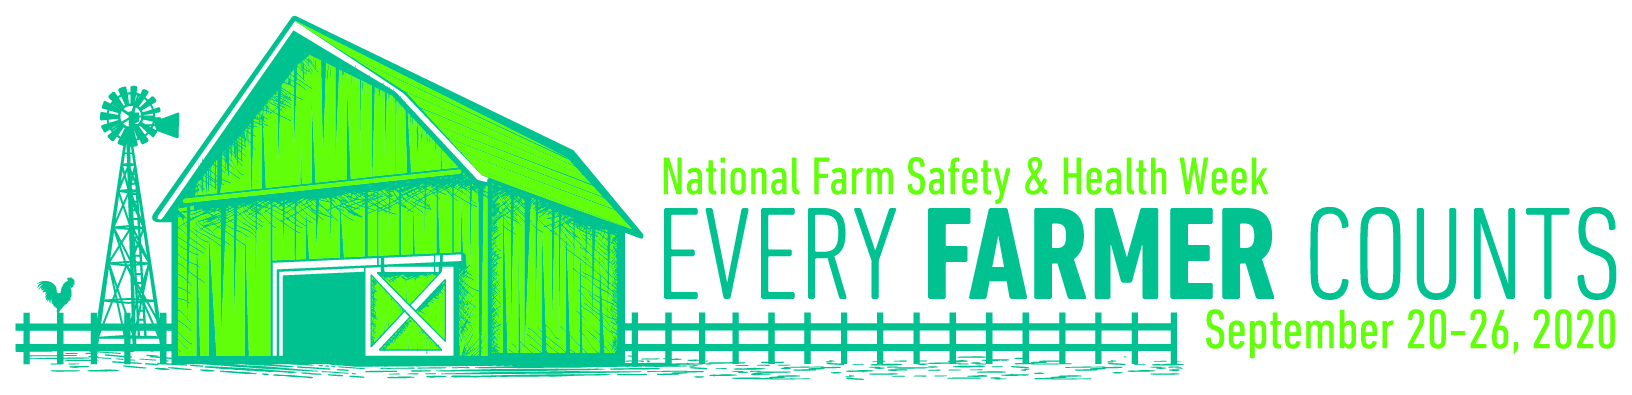 National Farm and Safety Week